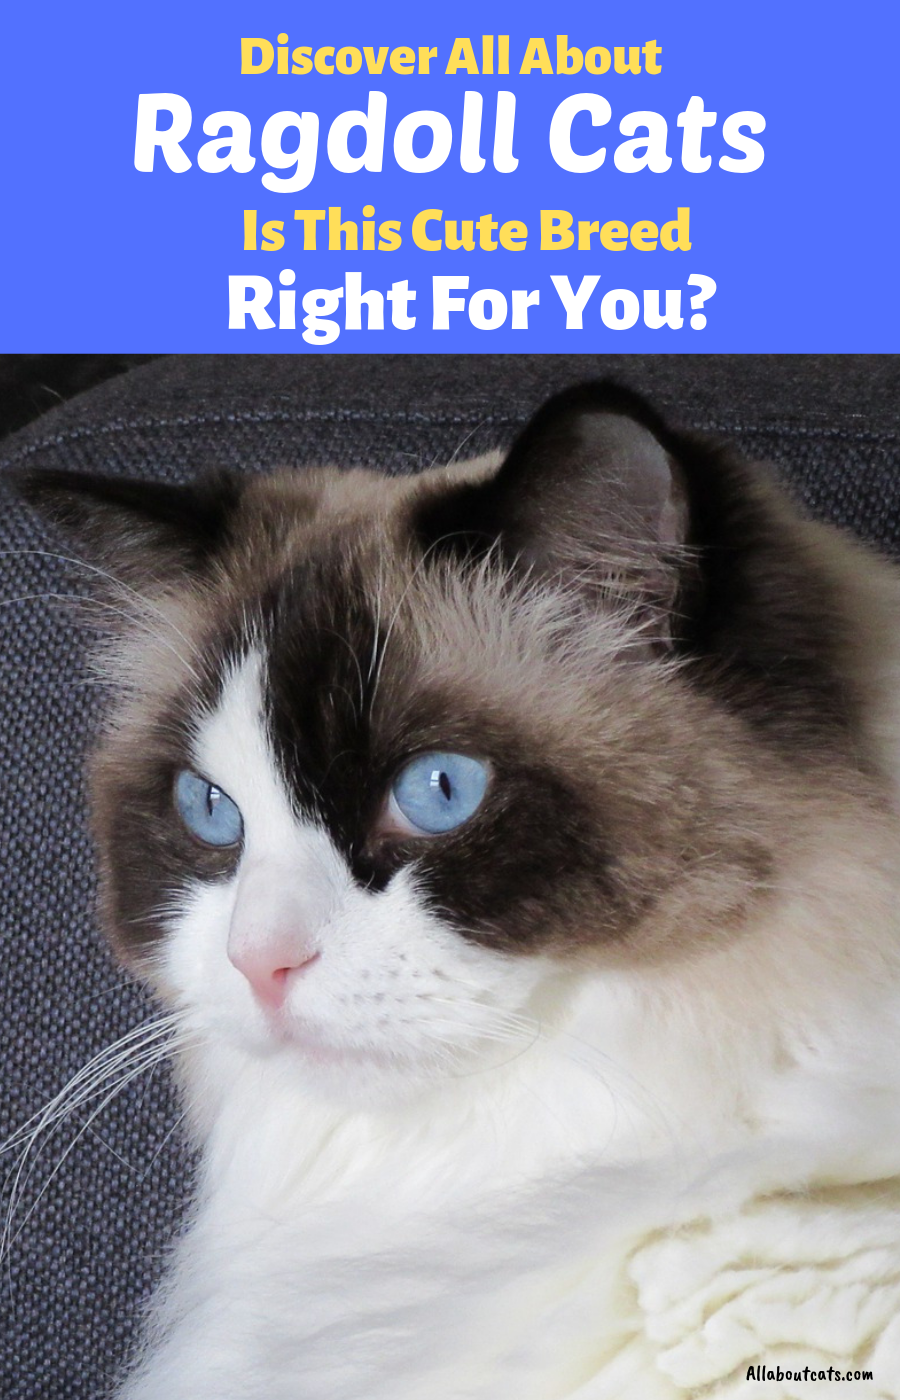 All About Ragdoll Cats (Find Out If This Cute Breed Is